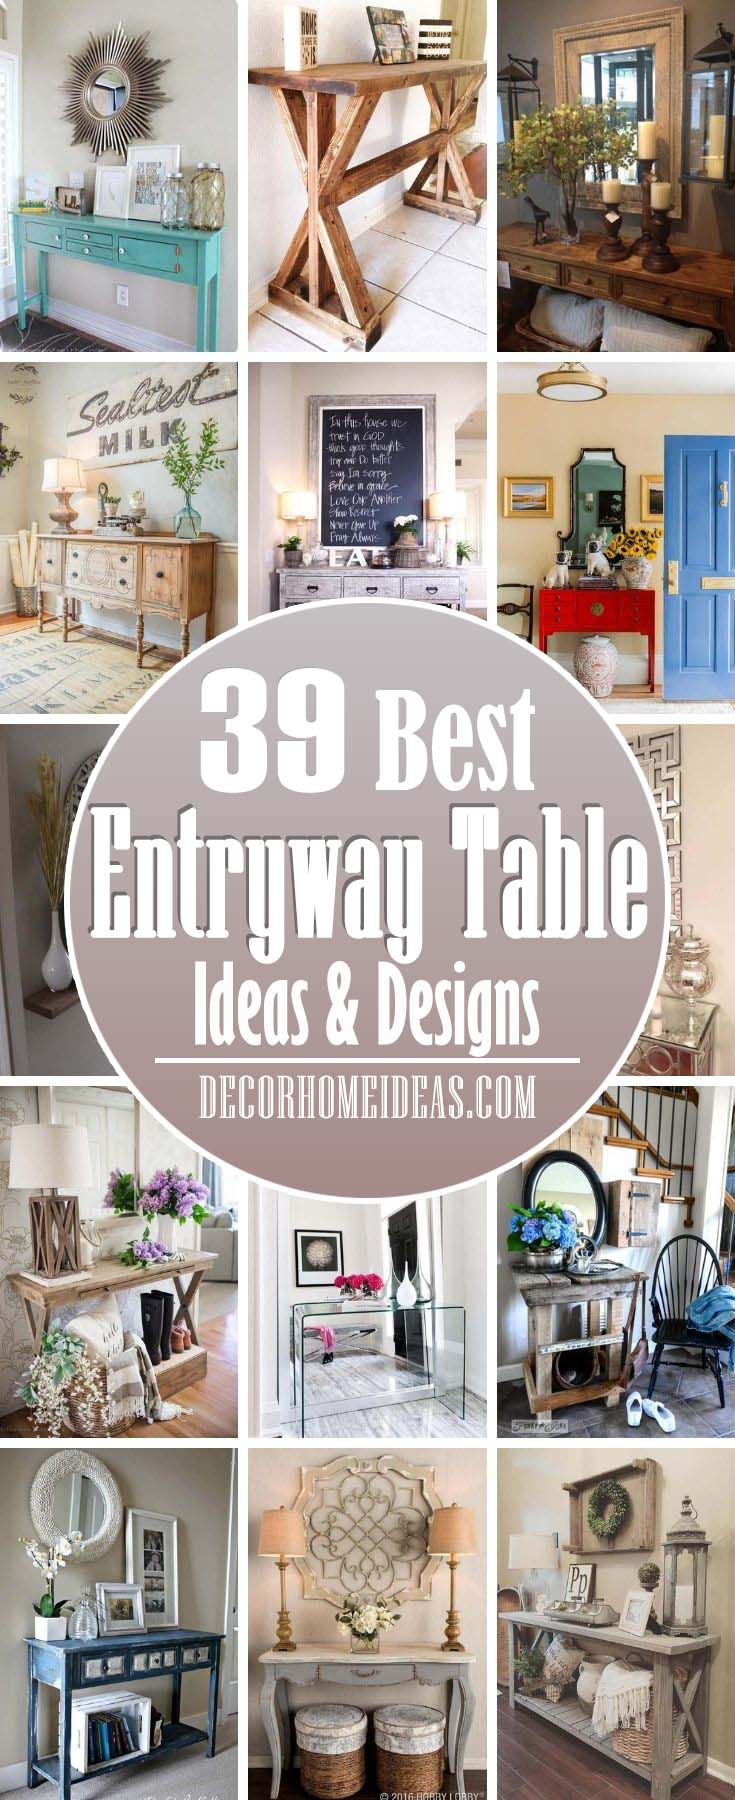 Best Entryway Table Ideas. Entry tables make defining first impressions at the entrance of your home. Also known as a foyer table, determining how to decorate your entrance and entryway table should be a priority.  #decorhomeideas